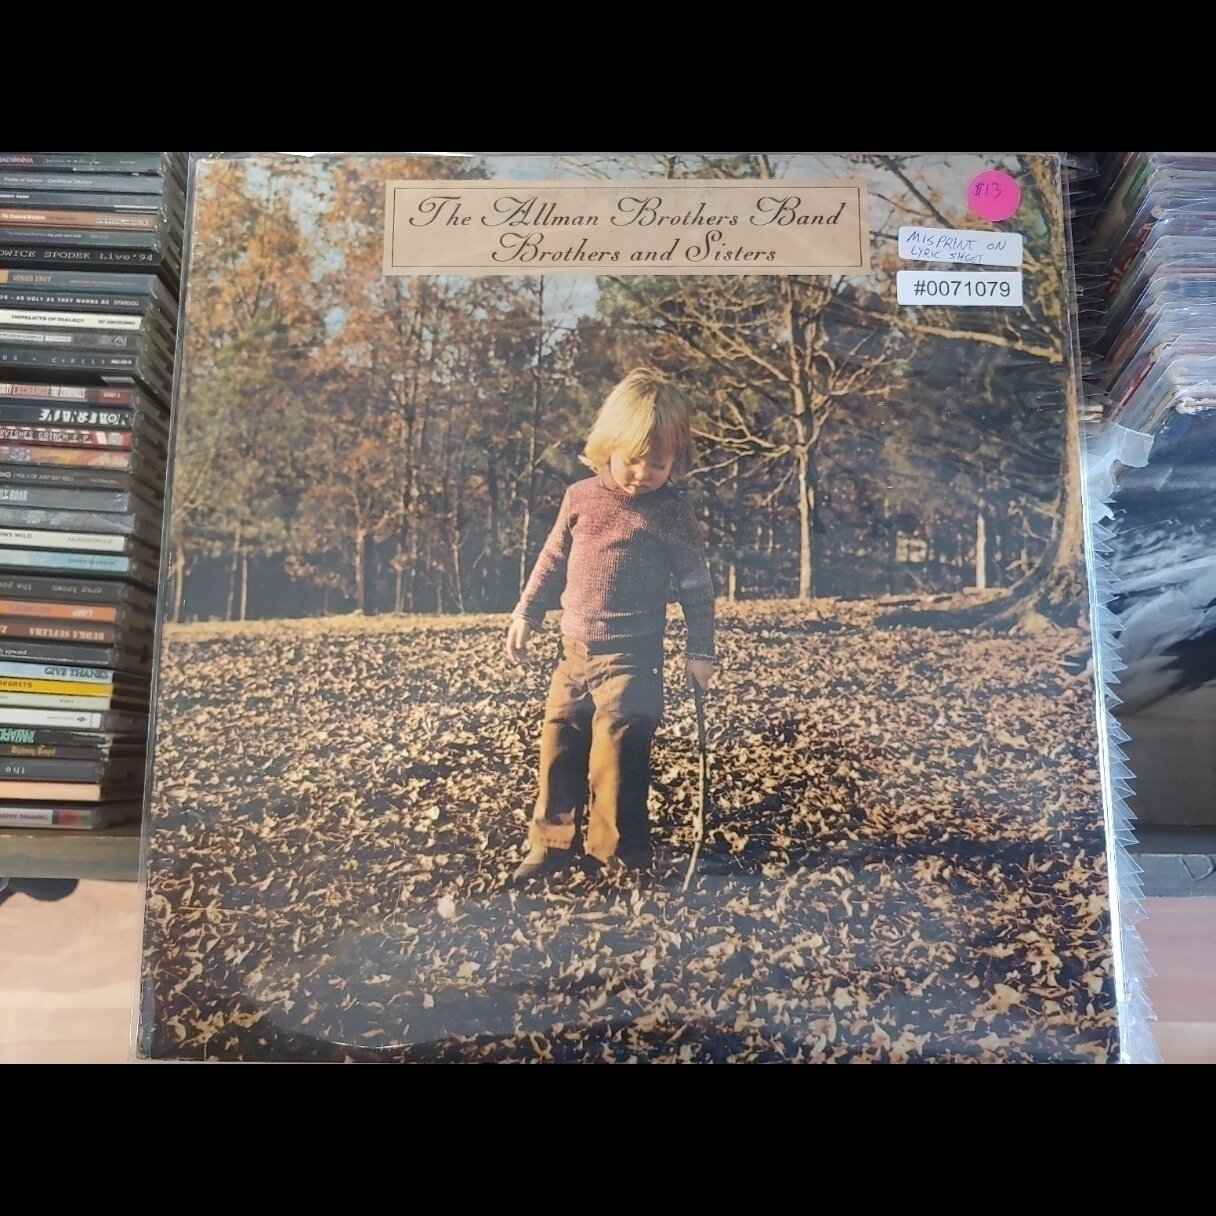 Allman BROTHERs Band Brothers and sisters